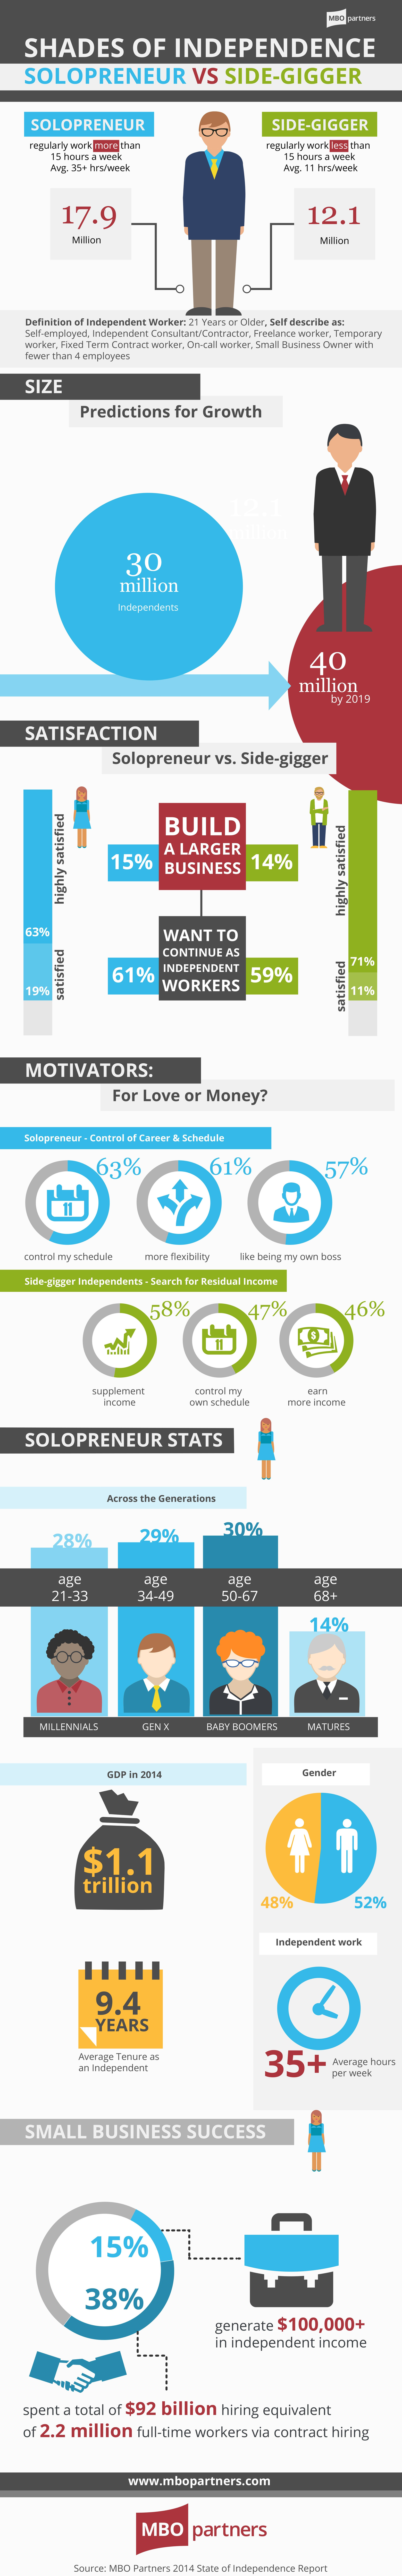 The Difference Between a Solopreneur and a Side-Gigger (Infographic)